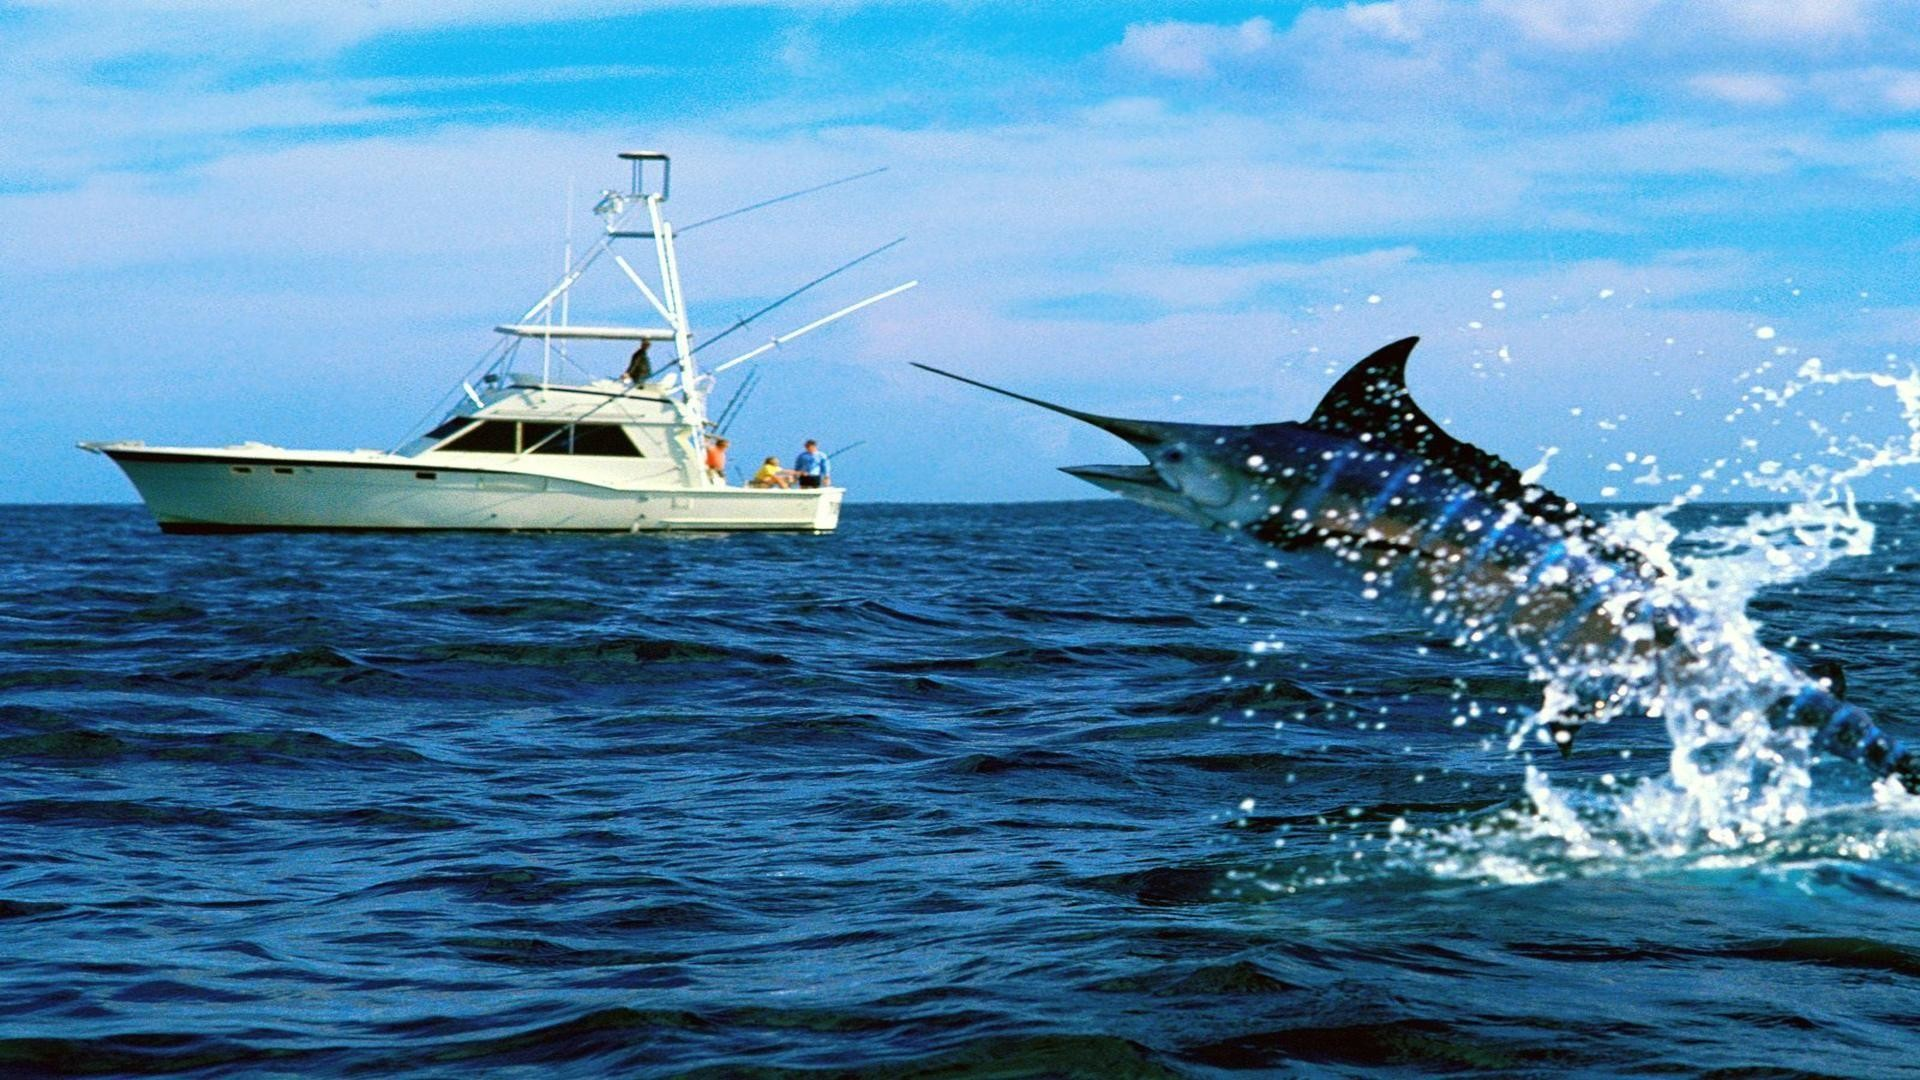 Res: 1920x1080, Pin Desktop Wallpapers Fishing Couple Free Download Backgrounds .